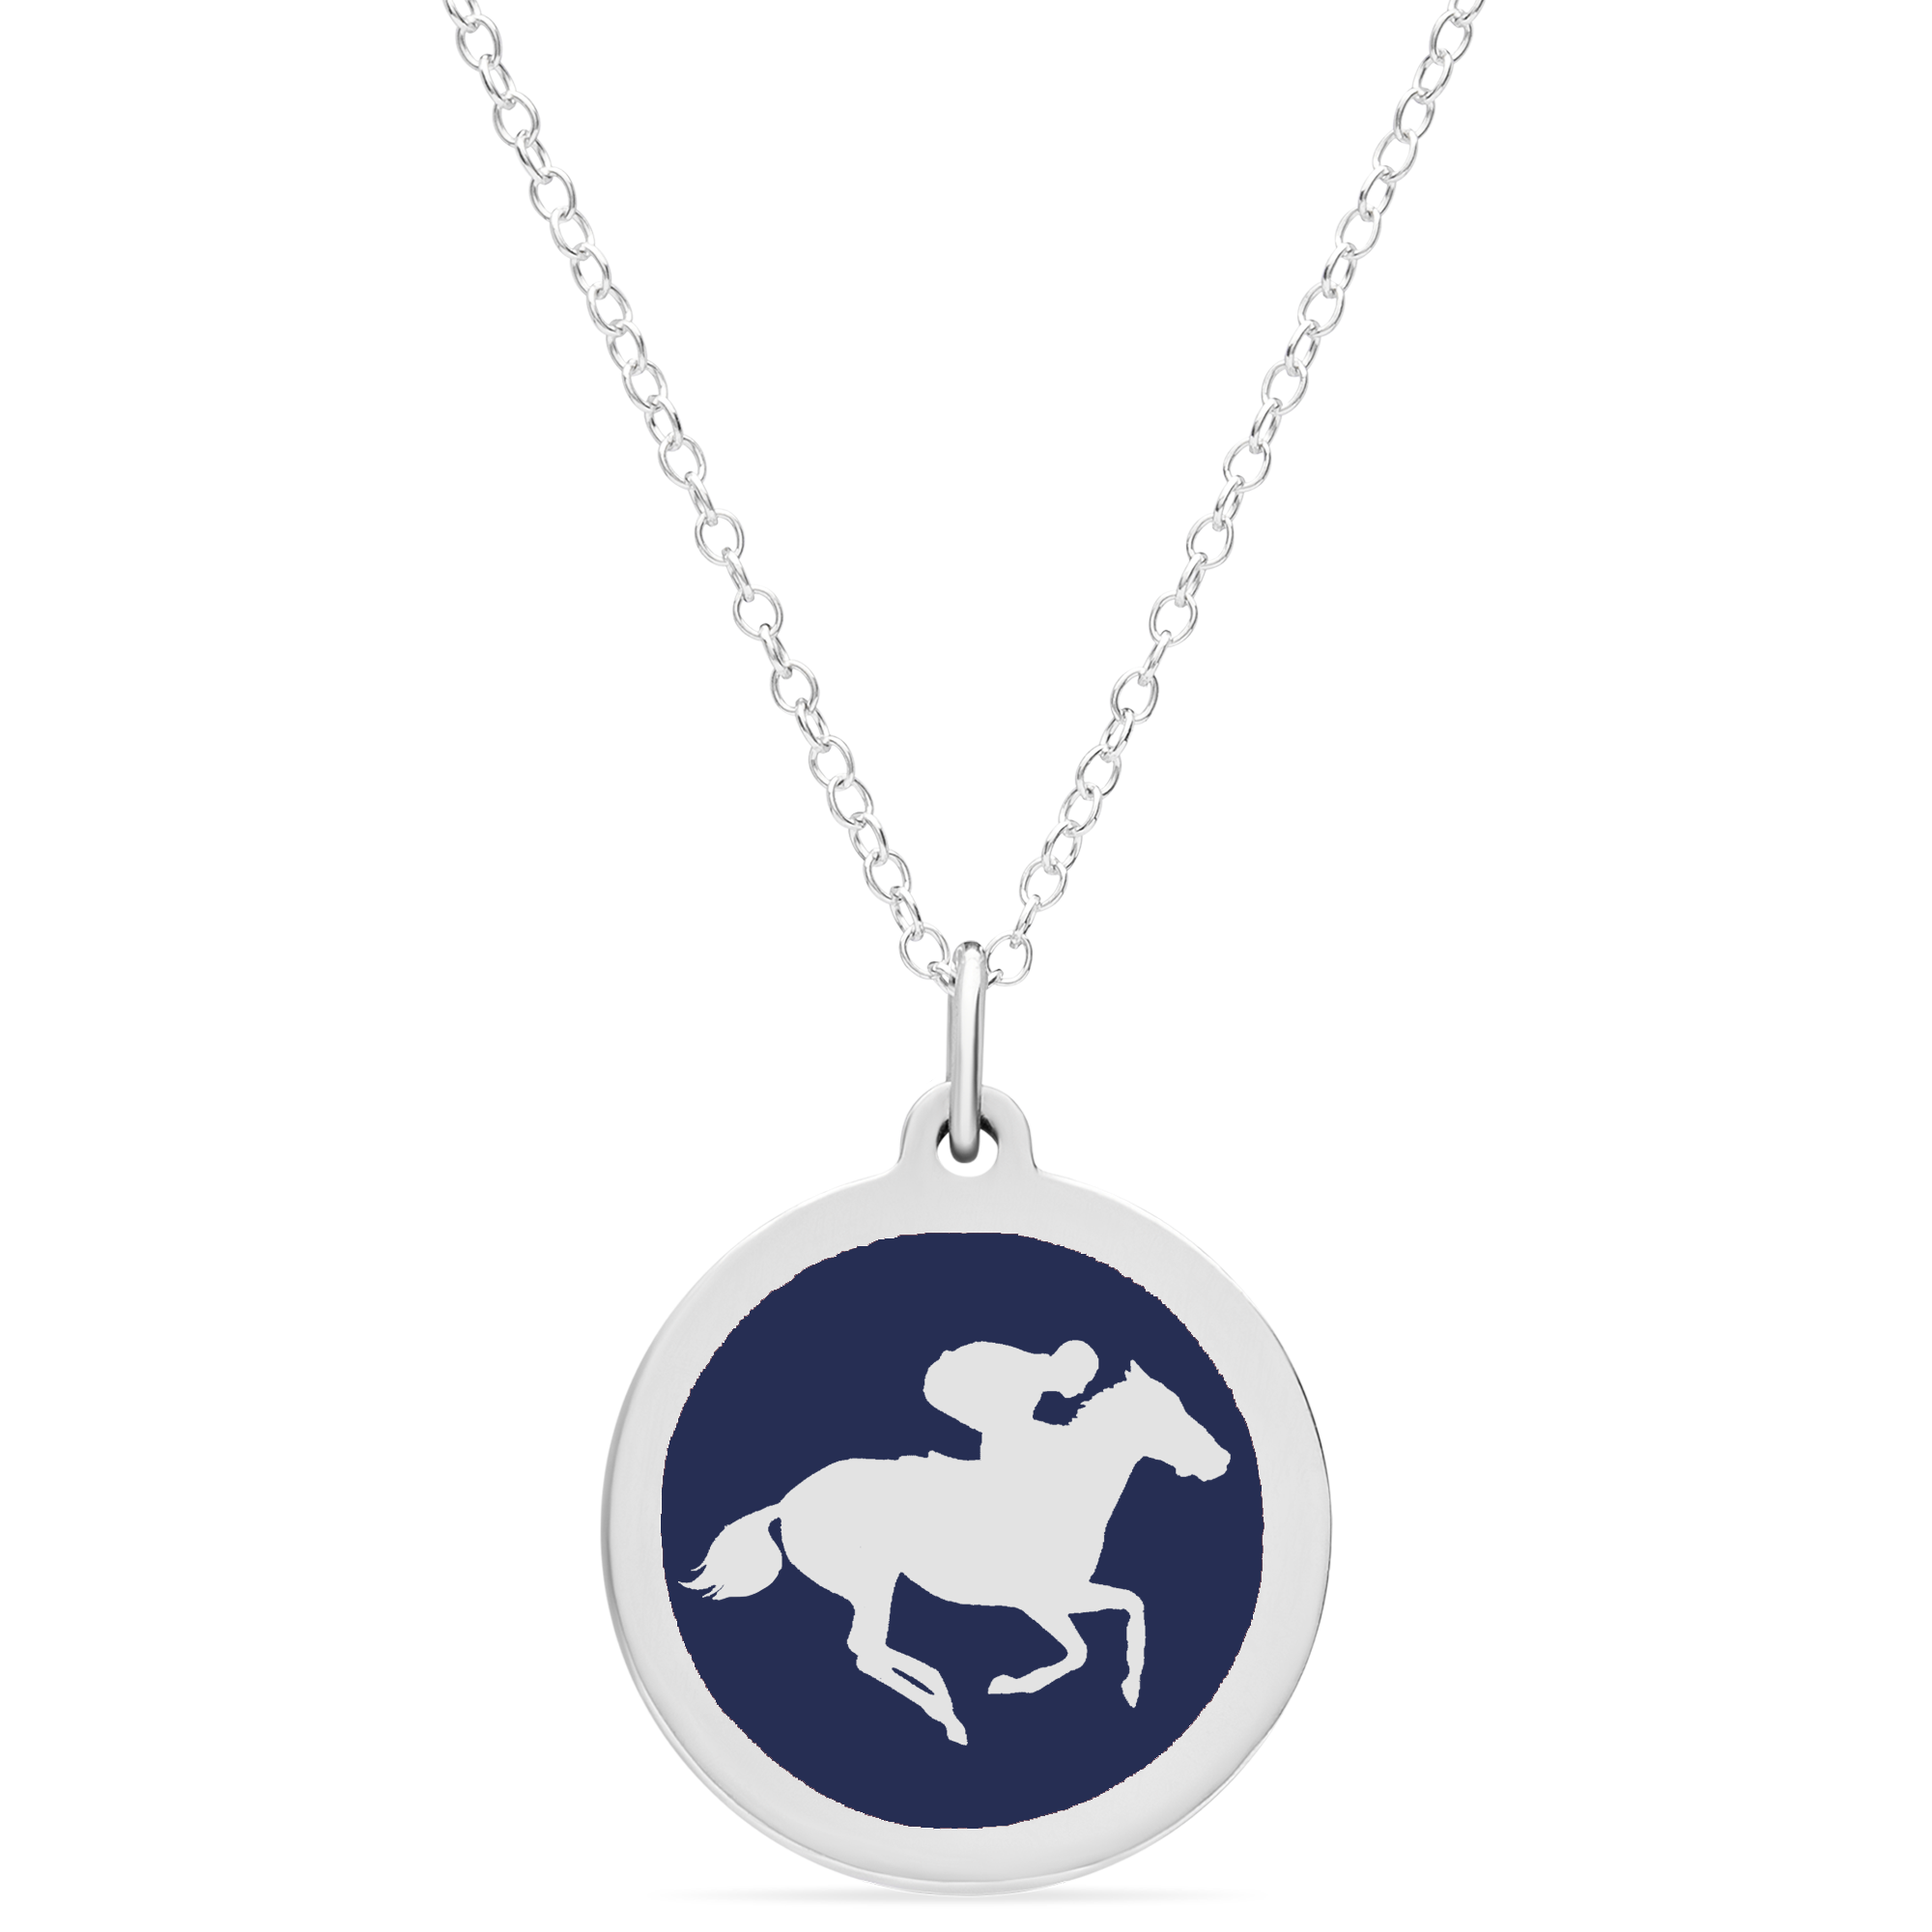 LARGE RACEHORSE CHARM sterling silver with rhodium plate